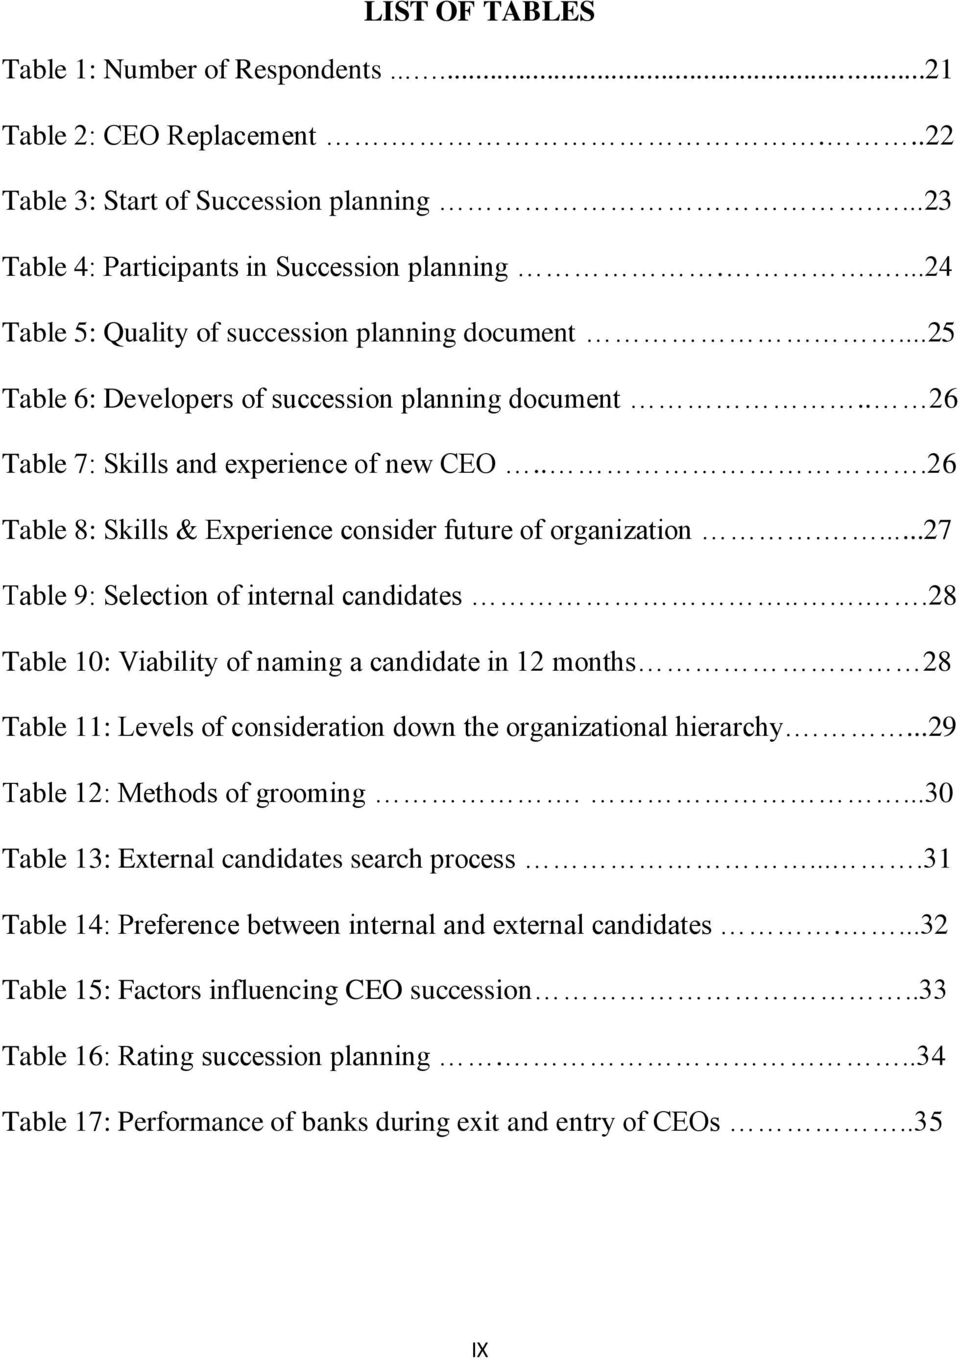 ..26 Table 8: Skills & Experience consider future of organization....27 Table 9: Selection of internal candidates.